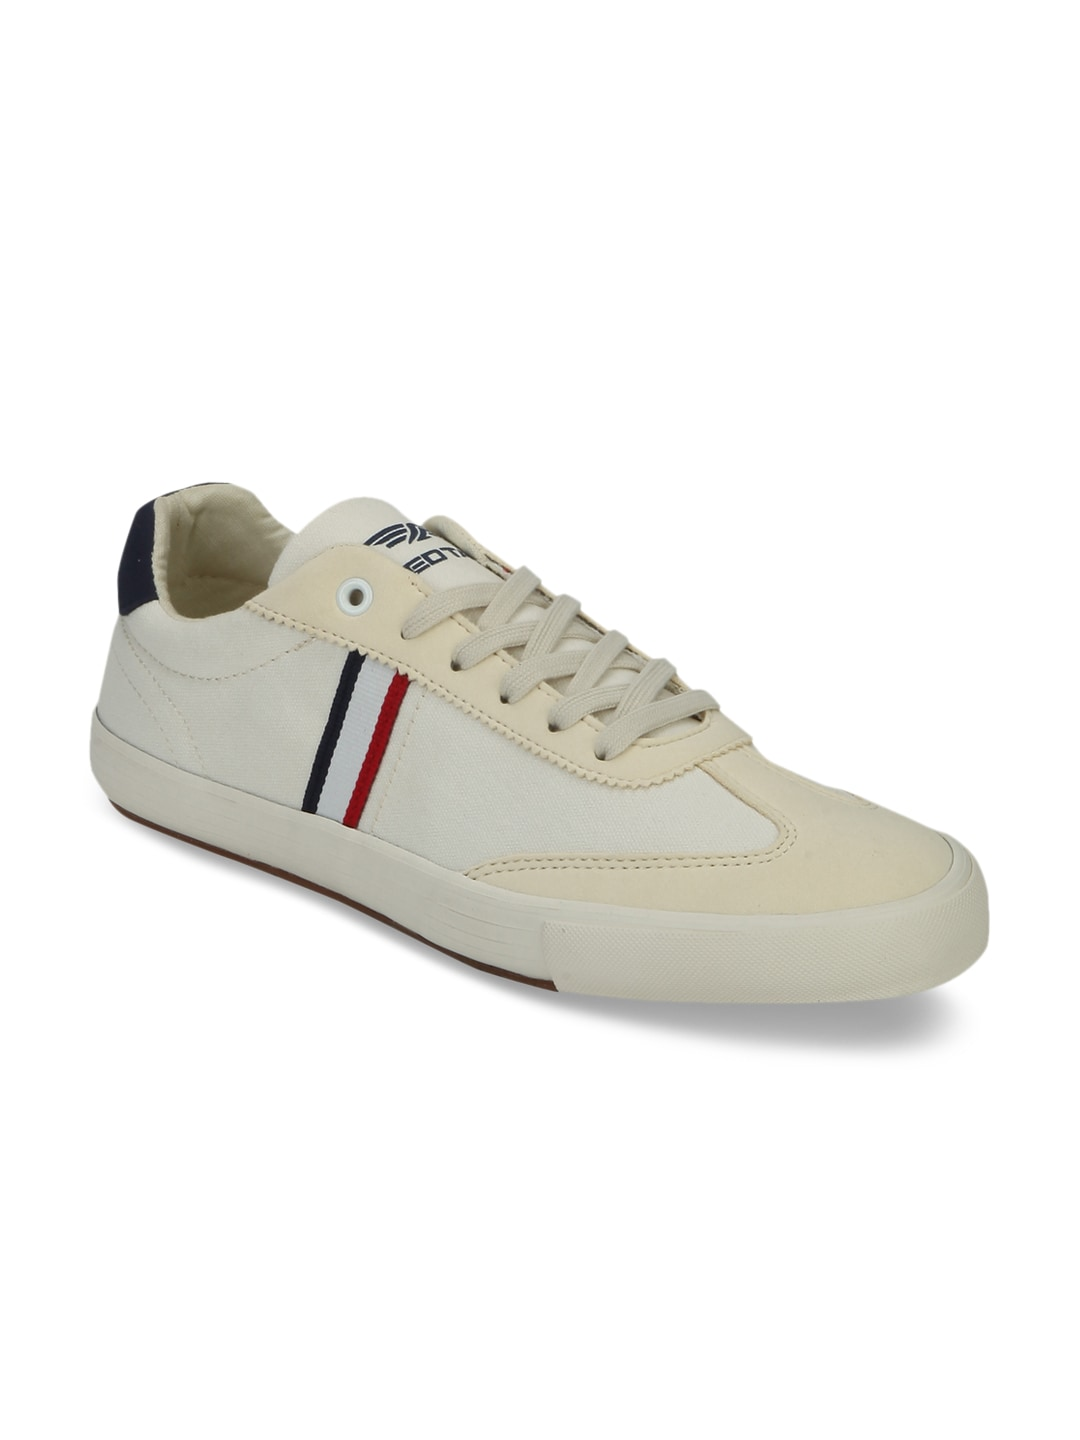 Red Tape Men White Sneakers image